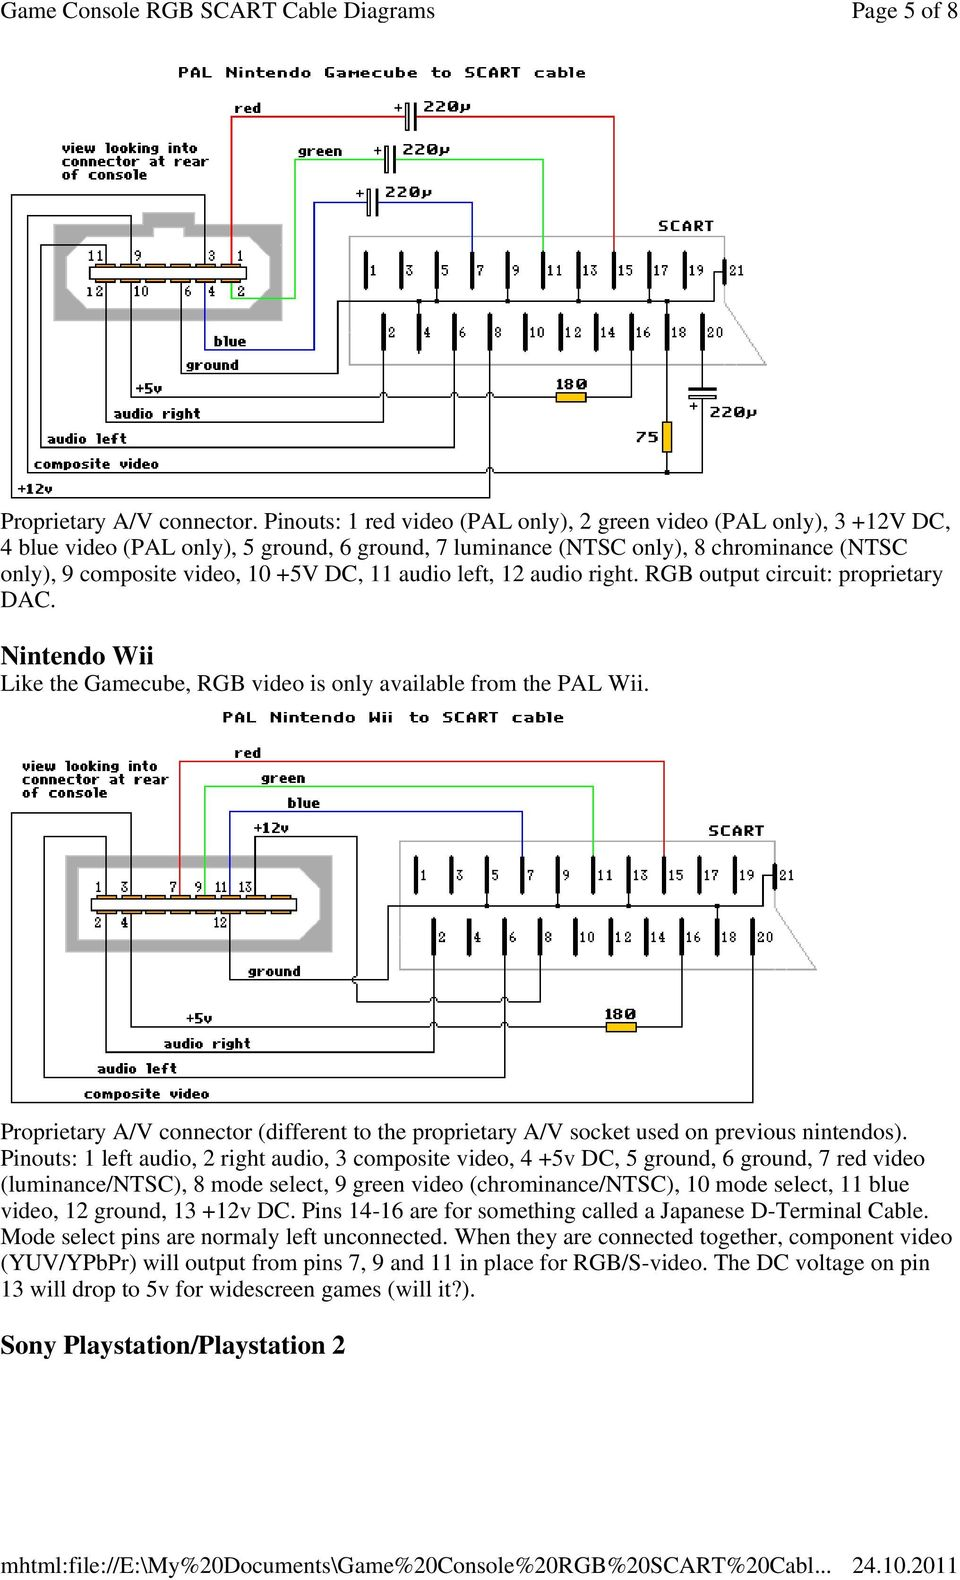 Scart Cables Wiring Diagram And Schematics Wii Wire Diagrams Source Rgb Output Circuit Proprietary Dac Nintendo